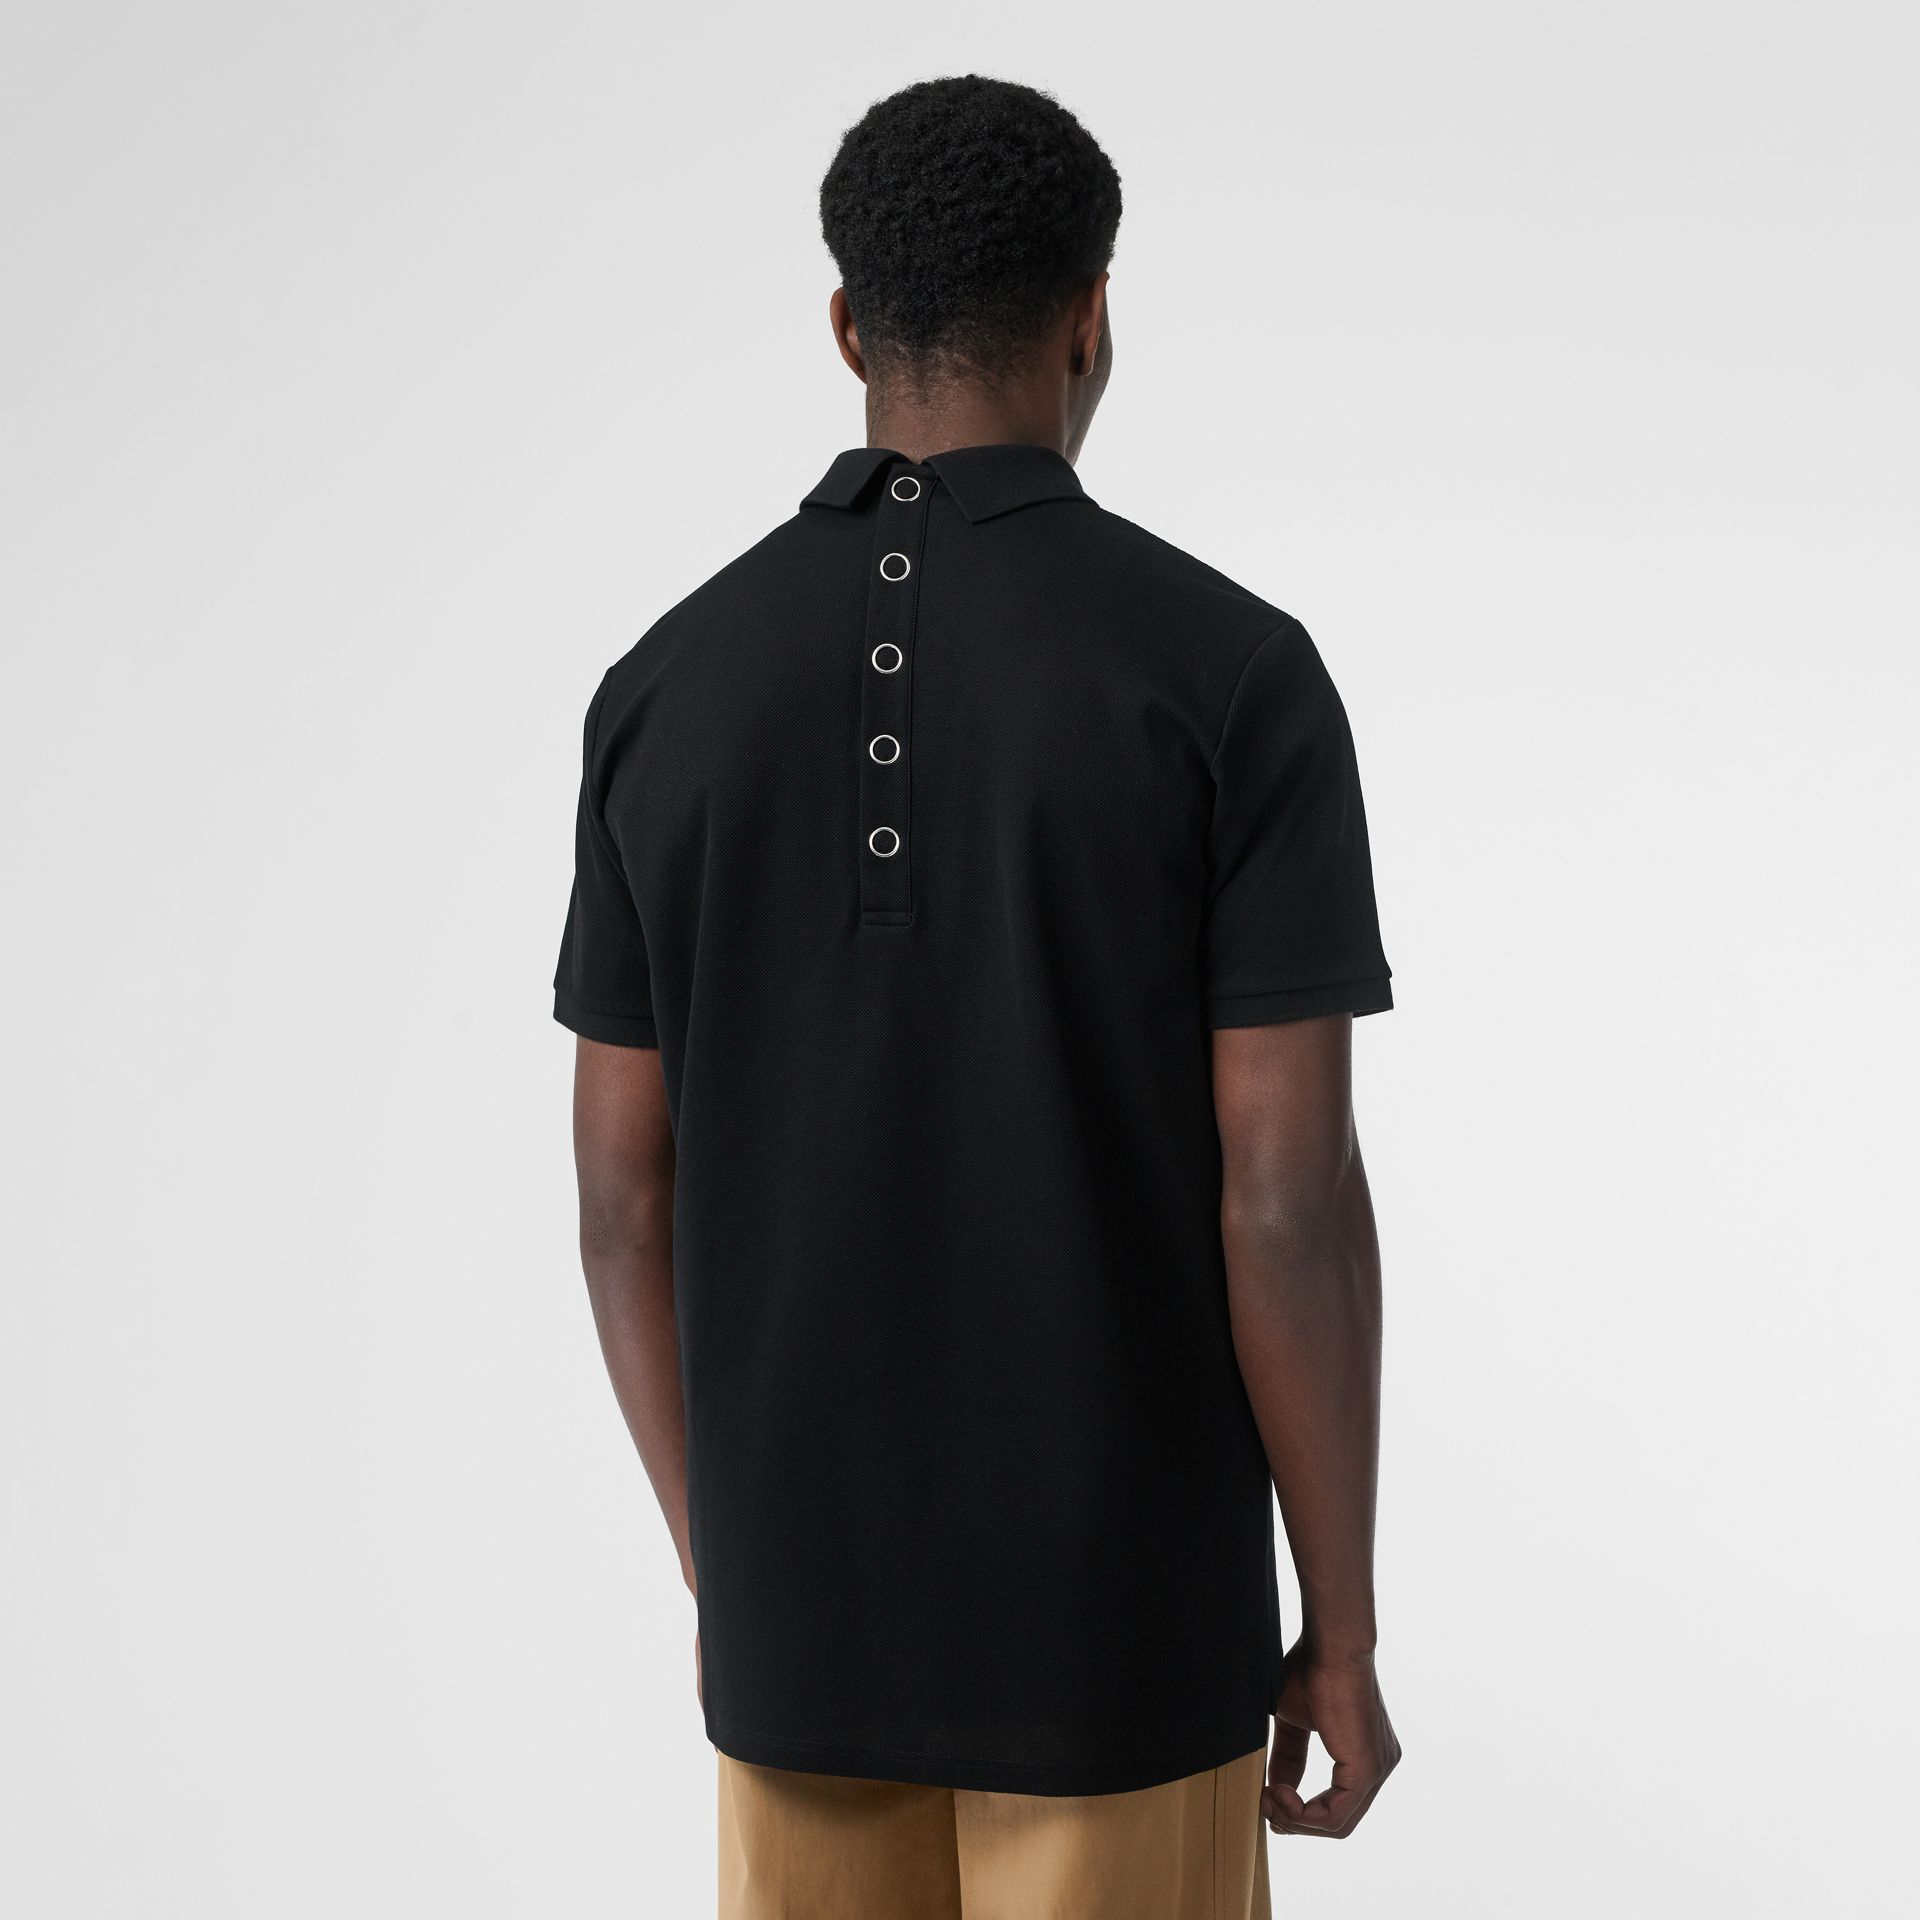 Monogram Motif Cotton Piqué Polo Shirt in Black | Burberry - gallery image 2